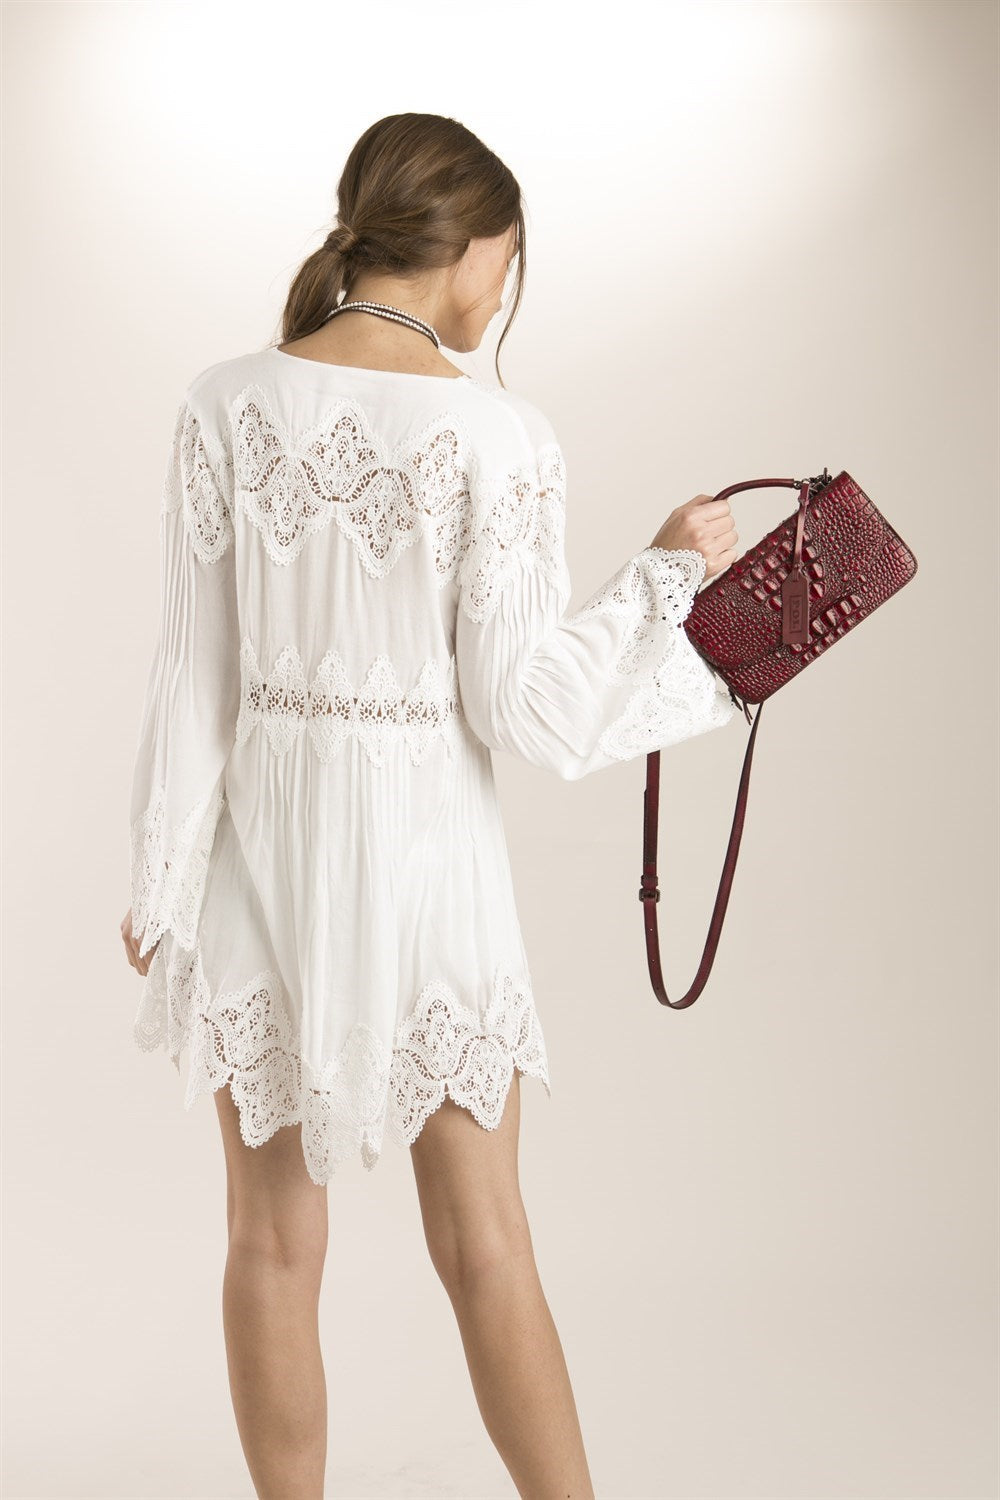 Back view young woman wearing white empire waist lace trim high-low tunic top